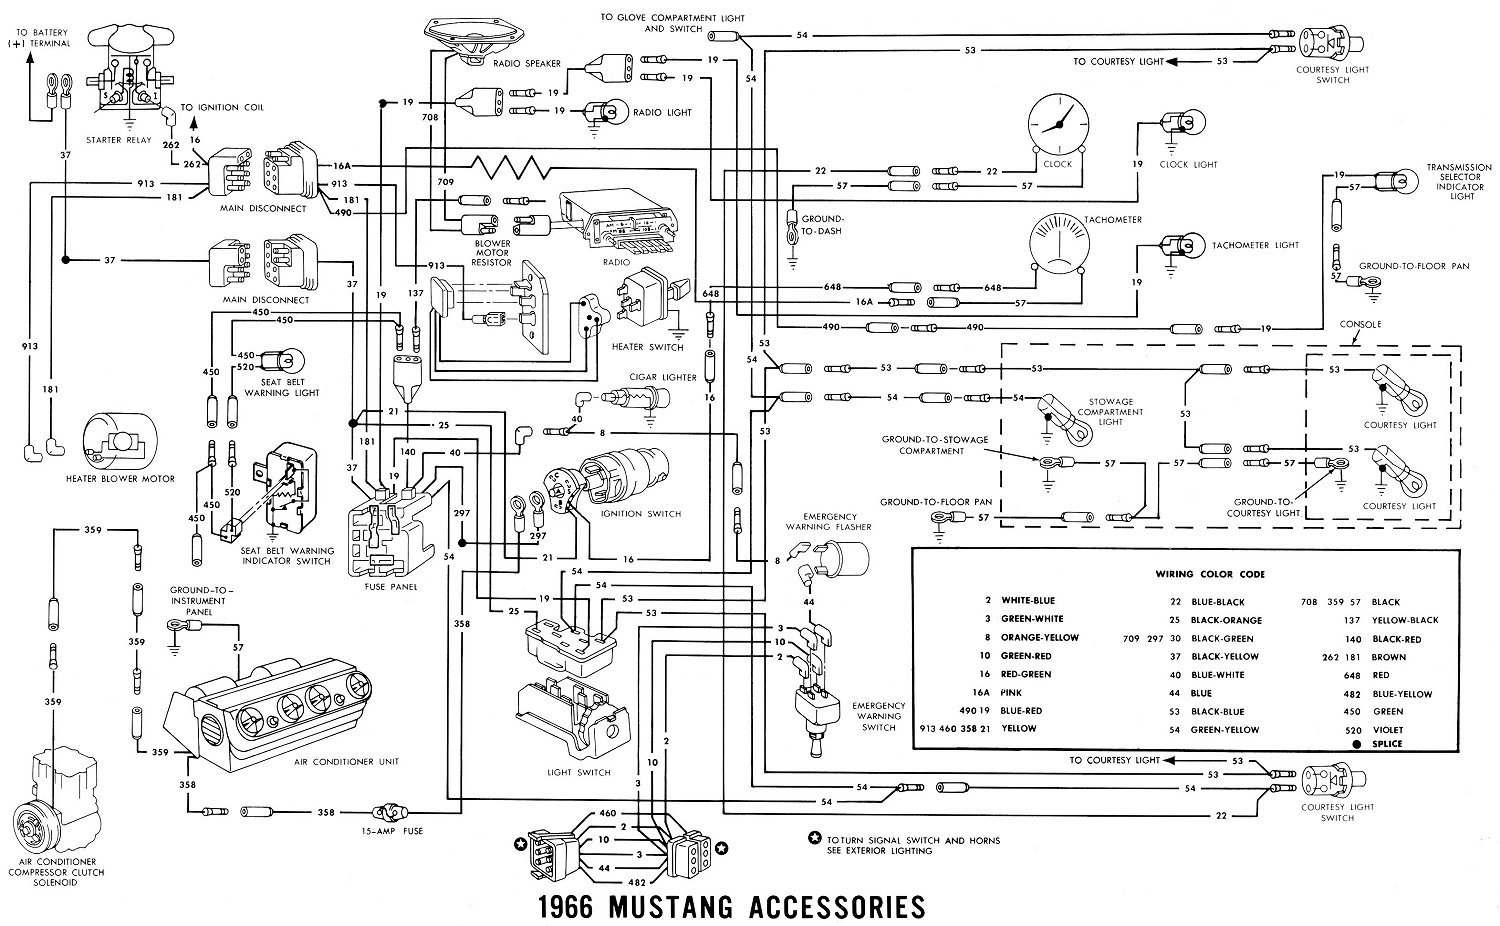 112253d1286219572 1966 mustang curtesy light problem 1966 ford mustang accessories wiring diagram the 2002 ford escape v6 wiring diagram for the charging system 2005 mustang gt ignition wiring diagram at gsmx.co